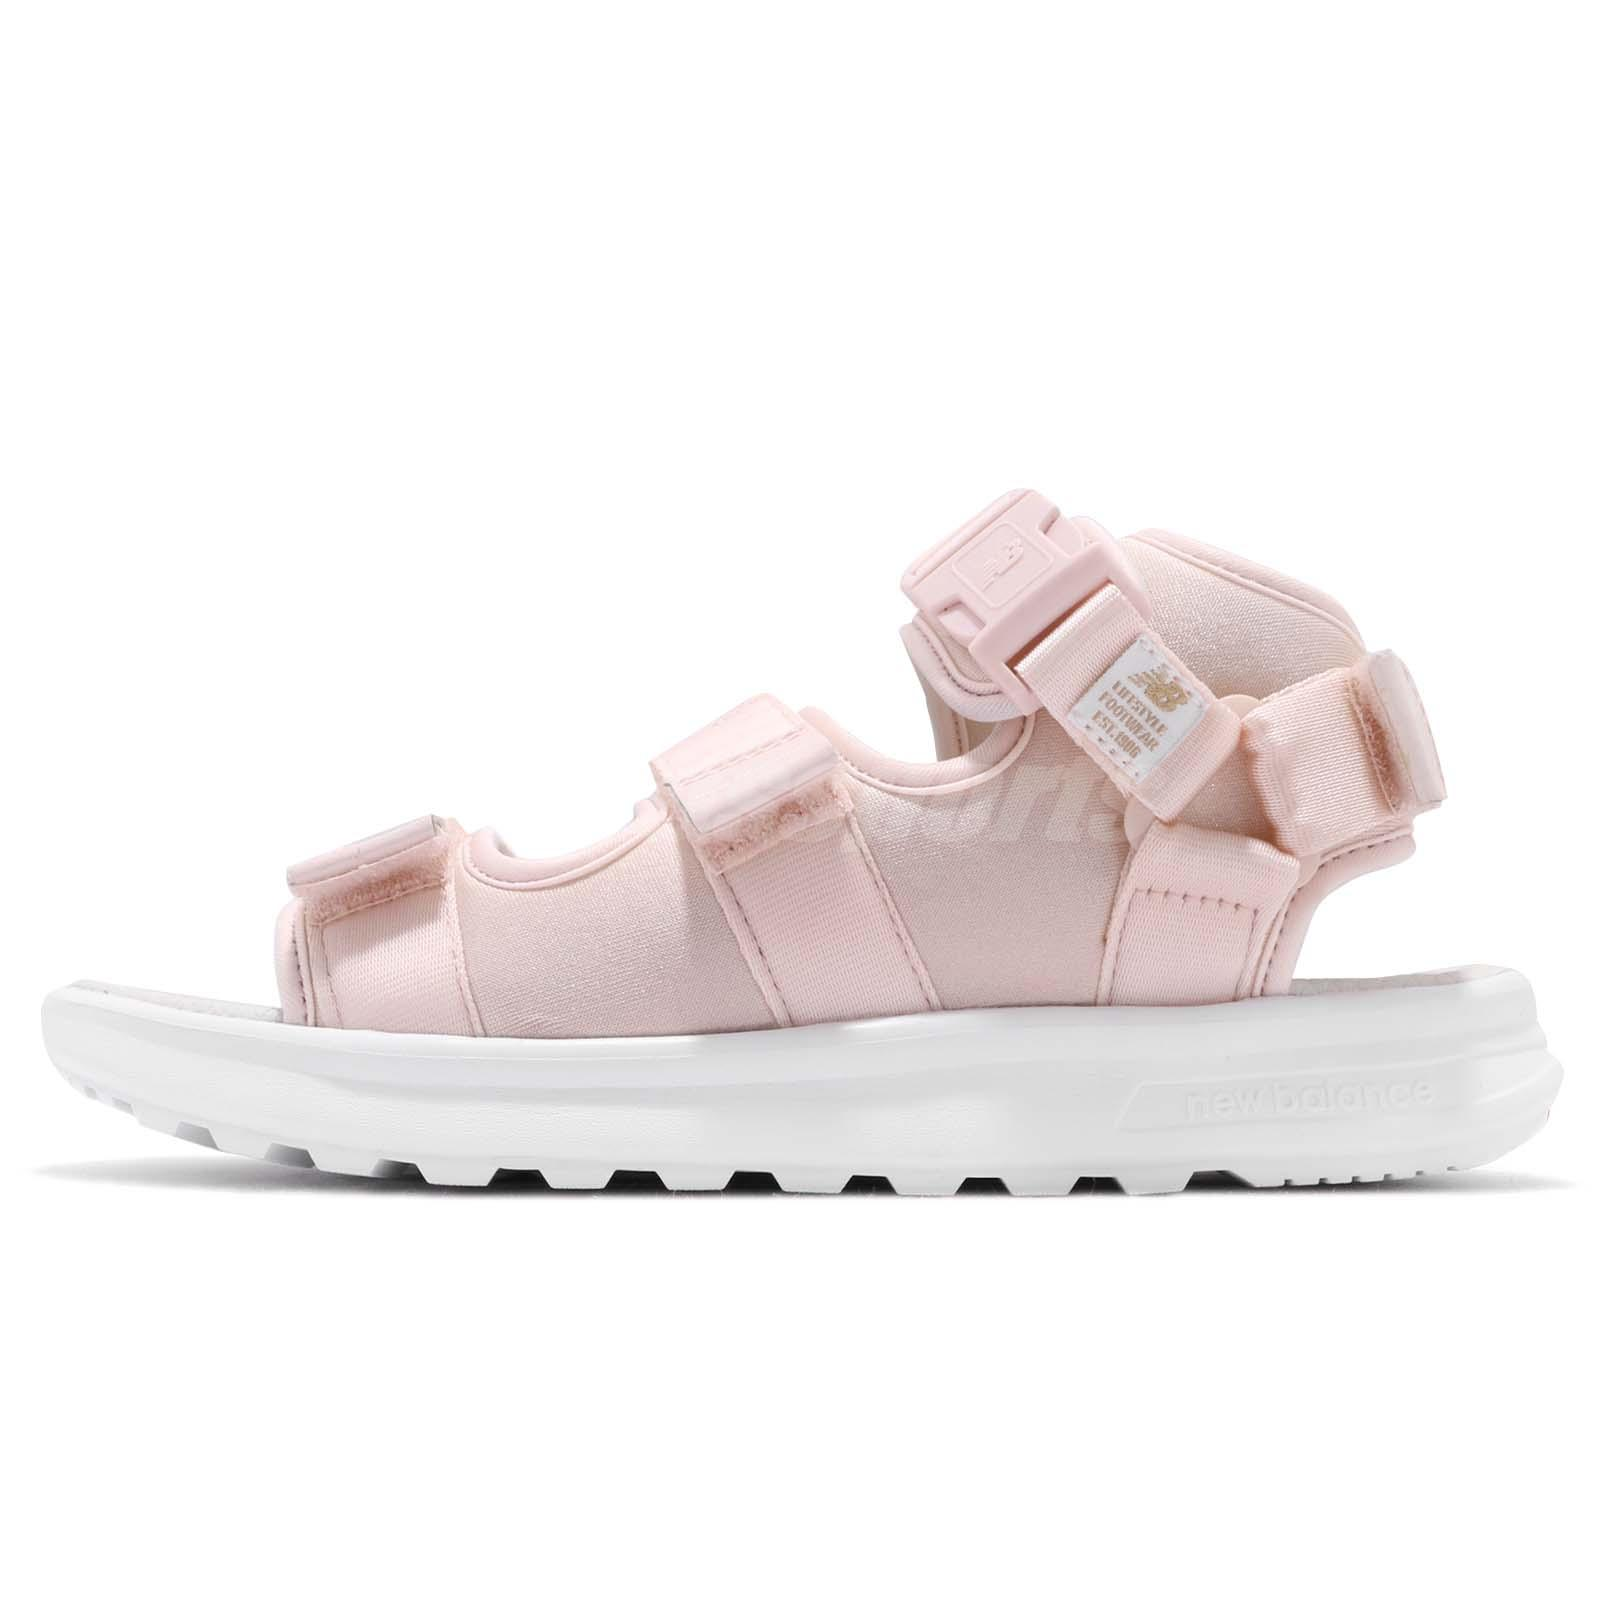 New Balance SD750PP D Pink White Men Women One Click Sandal Shoes SD750PPD